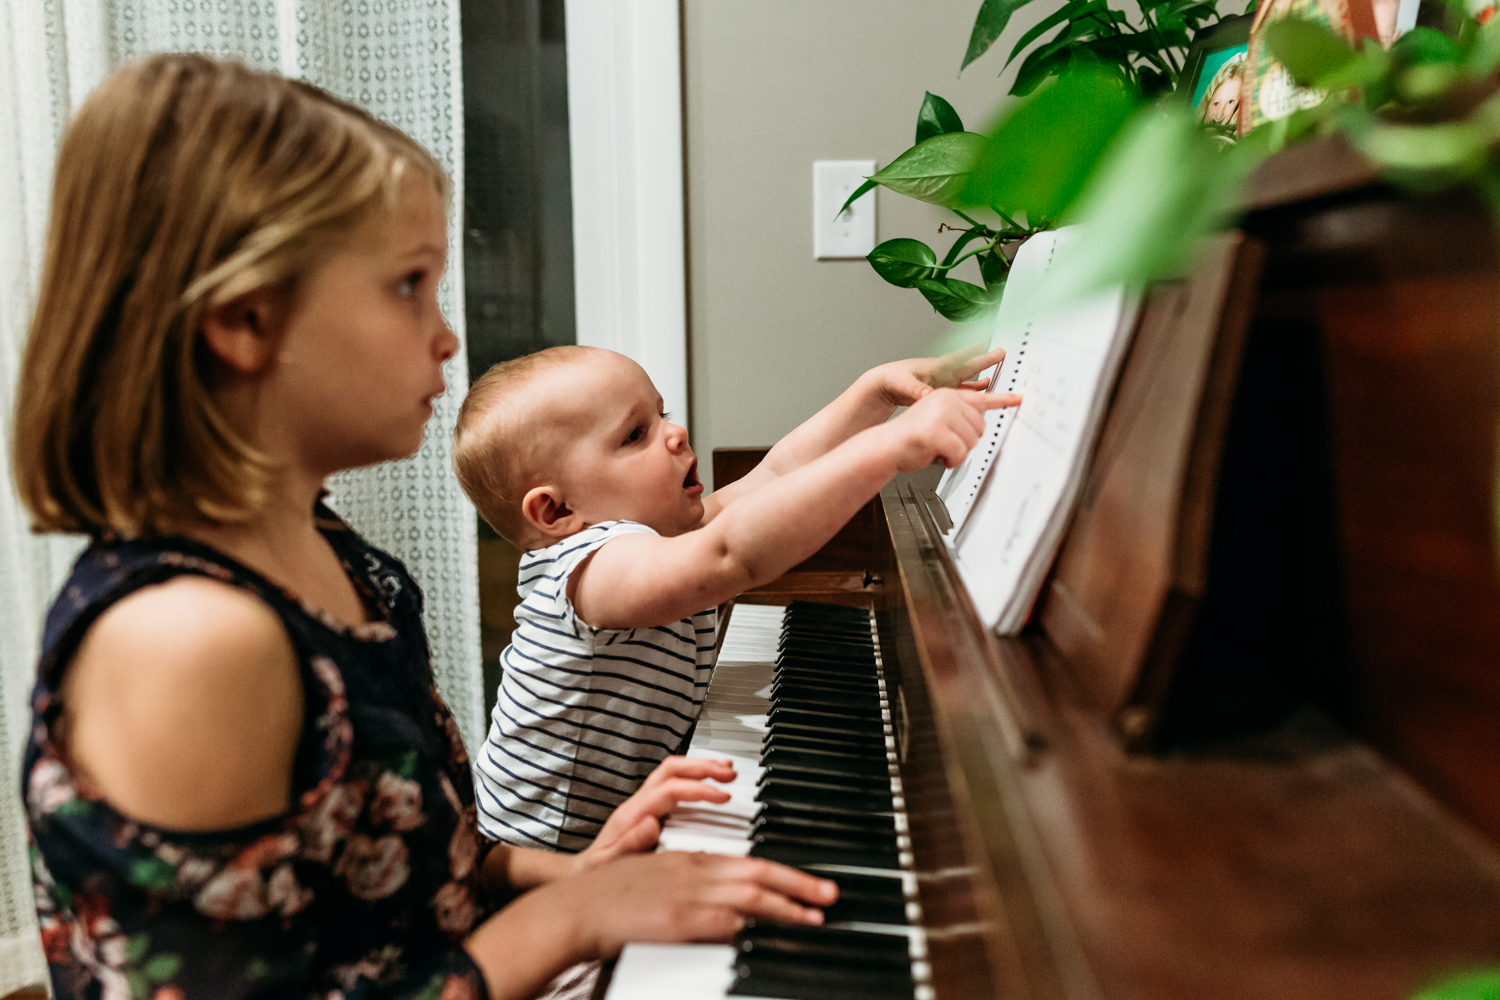 Side view of a girl with her baby sister sitting on the piano bench playing the piano